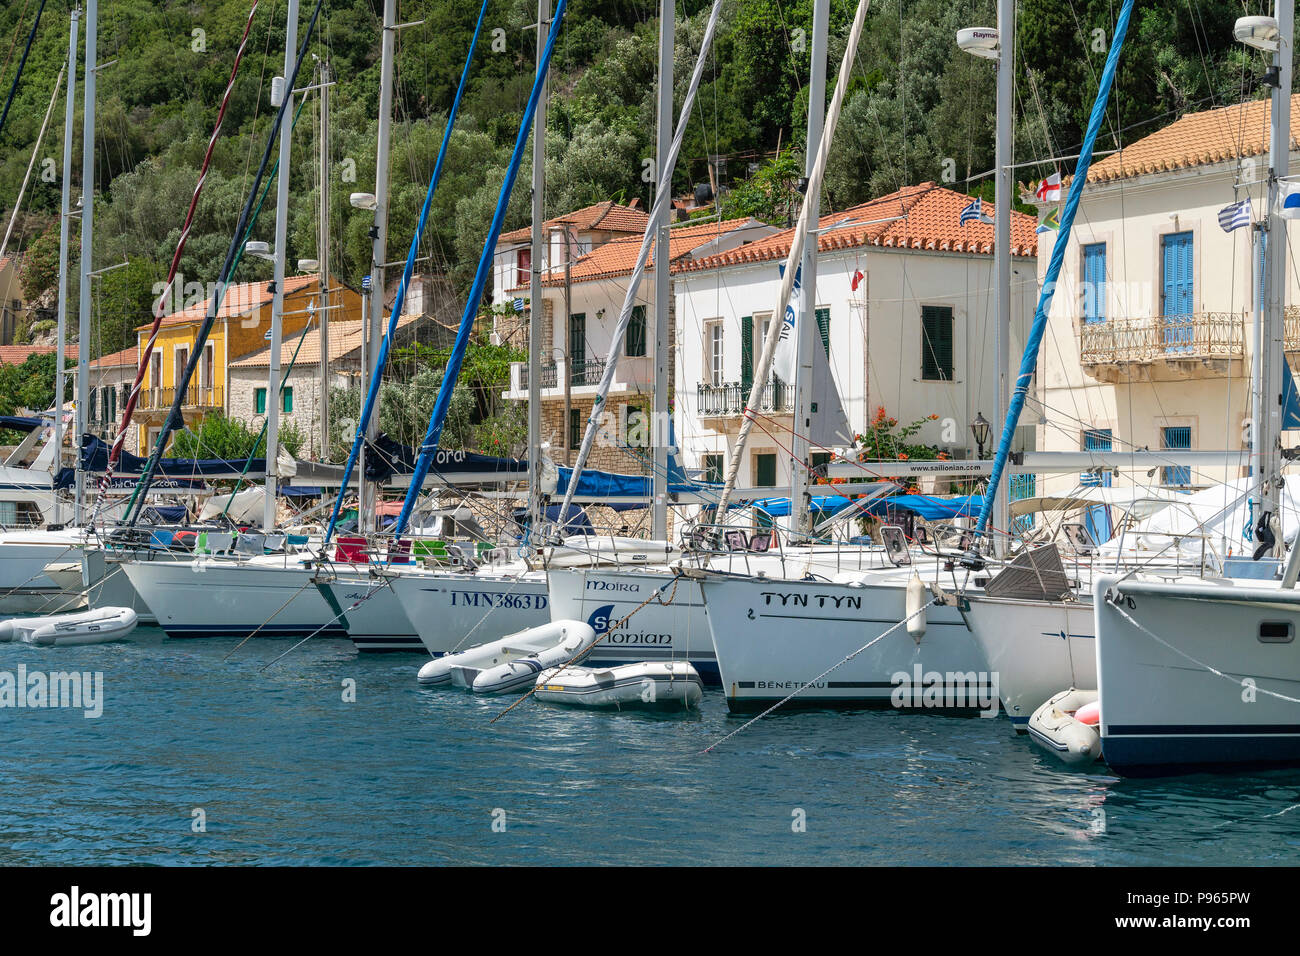 Yachts moored along the quay in the harbour at the village of Kioni on the north eastern side of the island of Ithaca, Ionian Sea, Greece Stock Photo